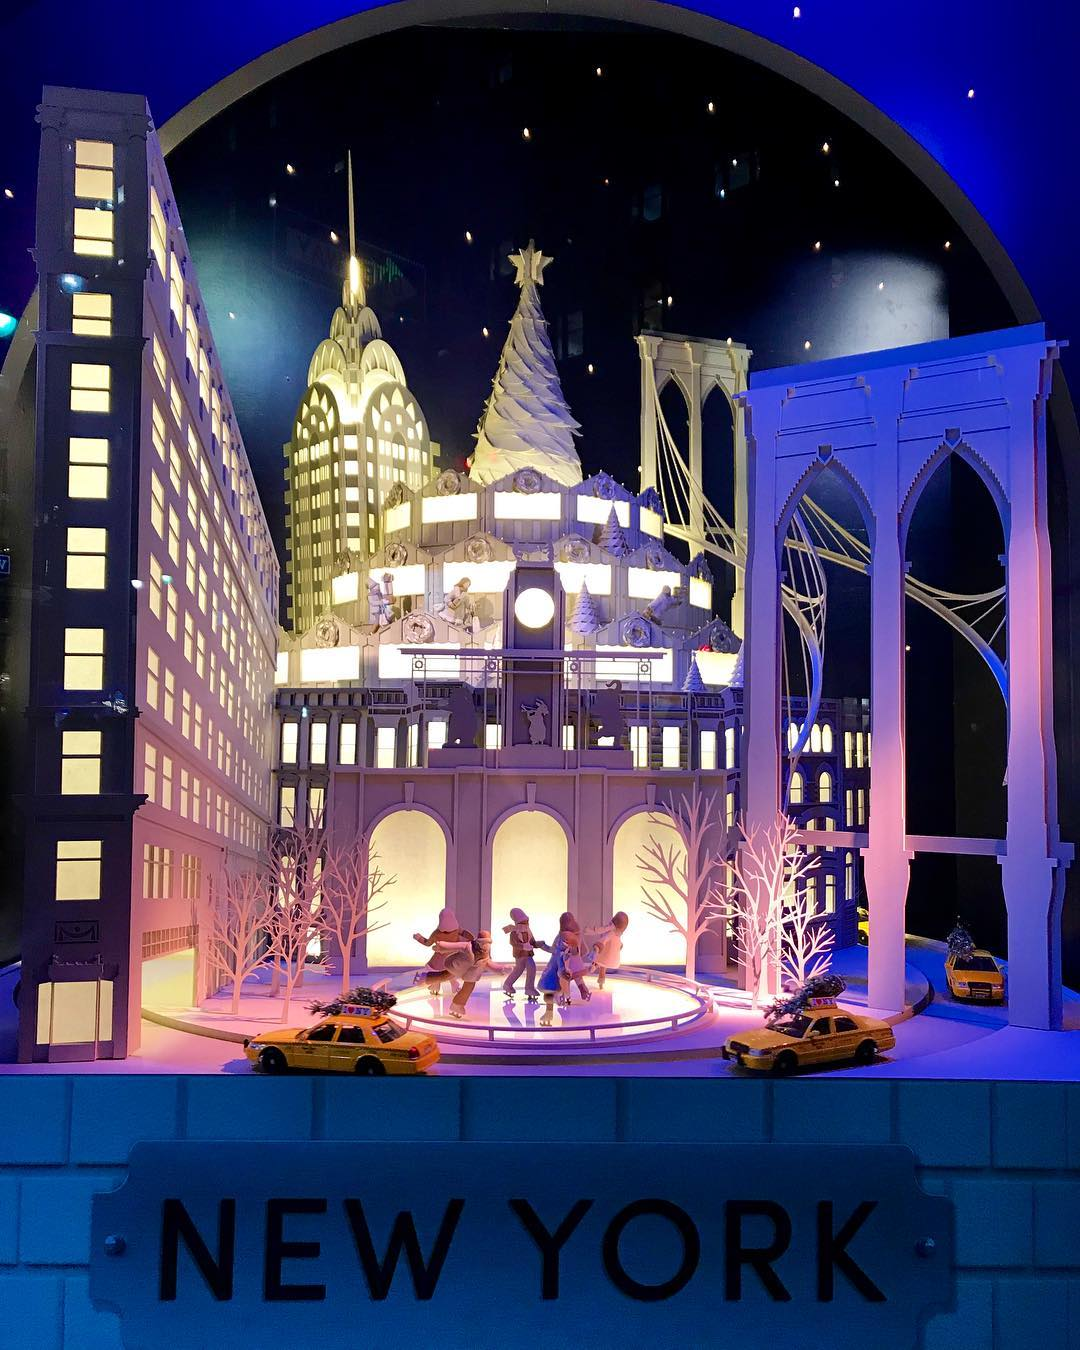 Lord And Taylor 2020 Christmas Windows Lord And Taylor Nyc Christmas Windows 2020 Server | Afqpzv